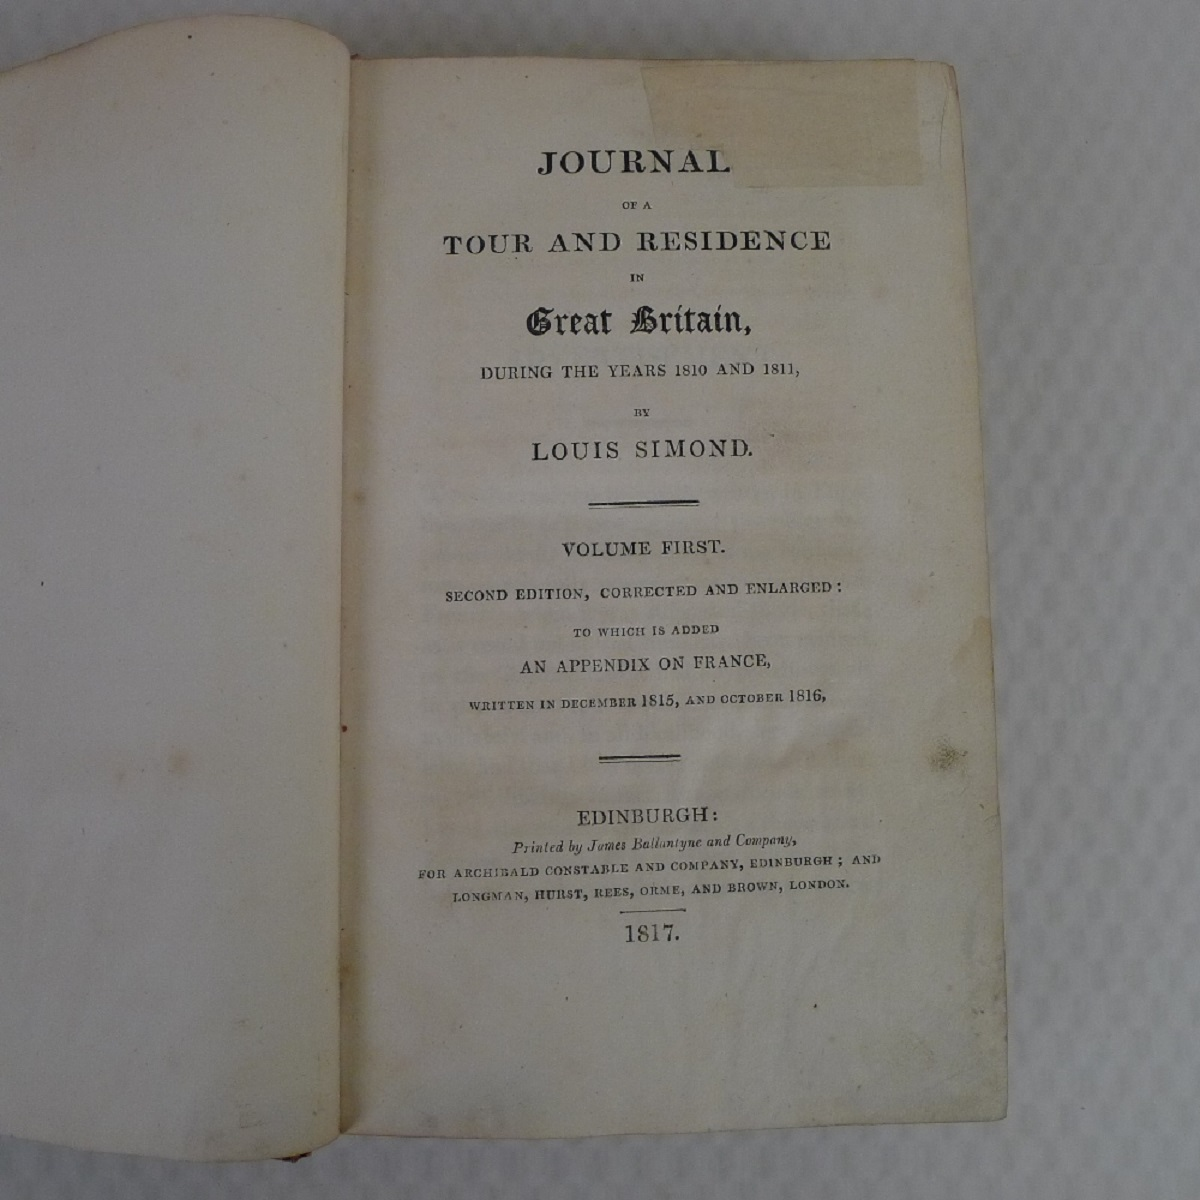 Simond's Travels in Great Britain Volumes I and II, Second Edition published in 1817, being a - Image 3 of 9